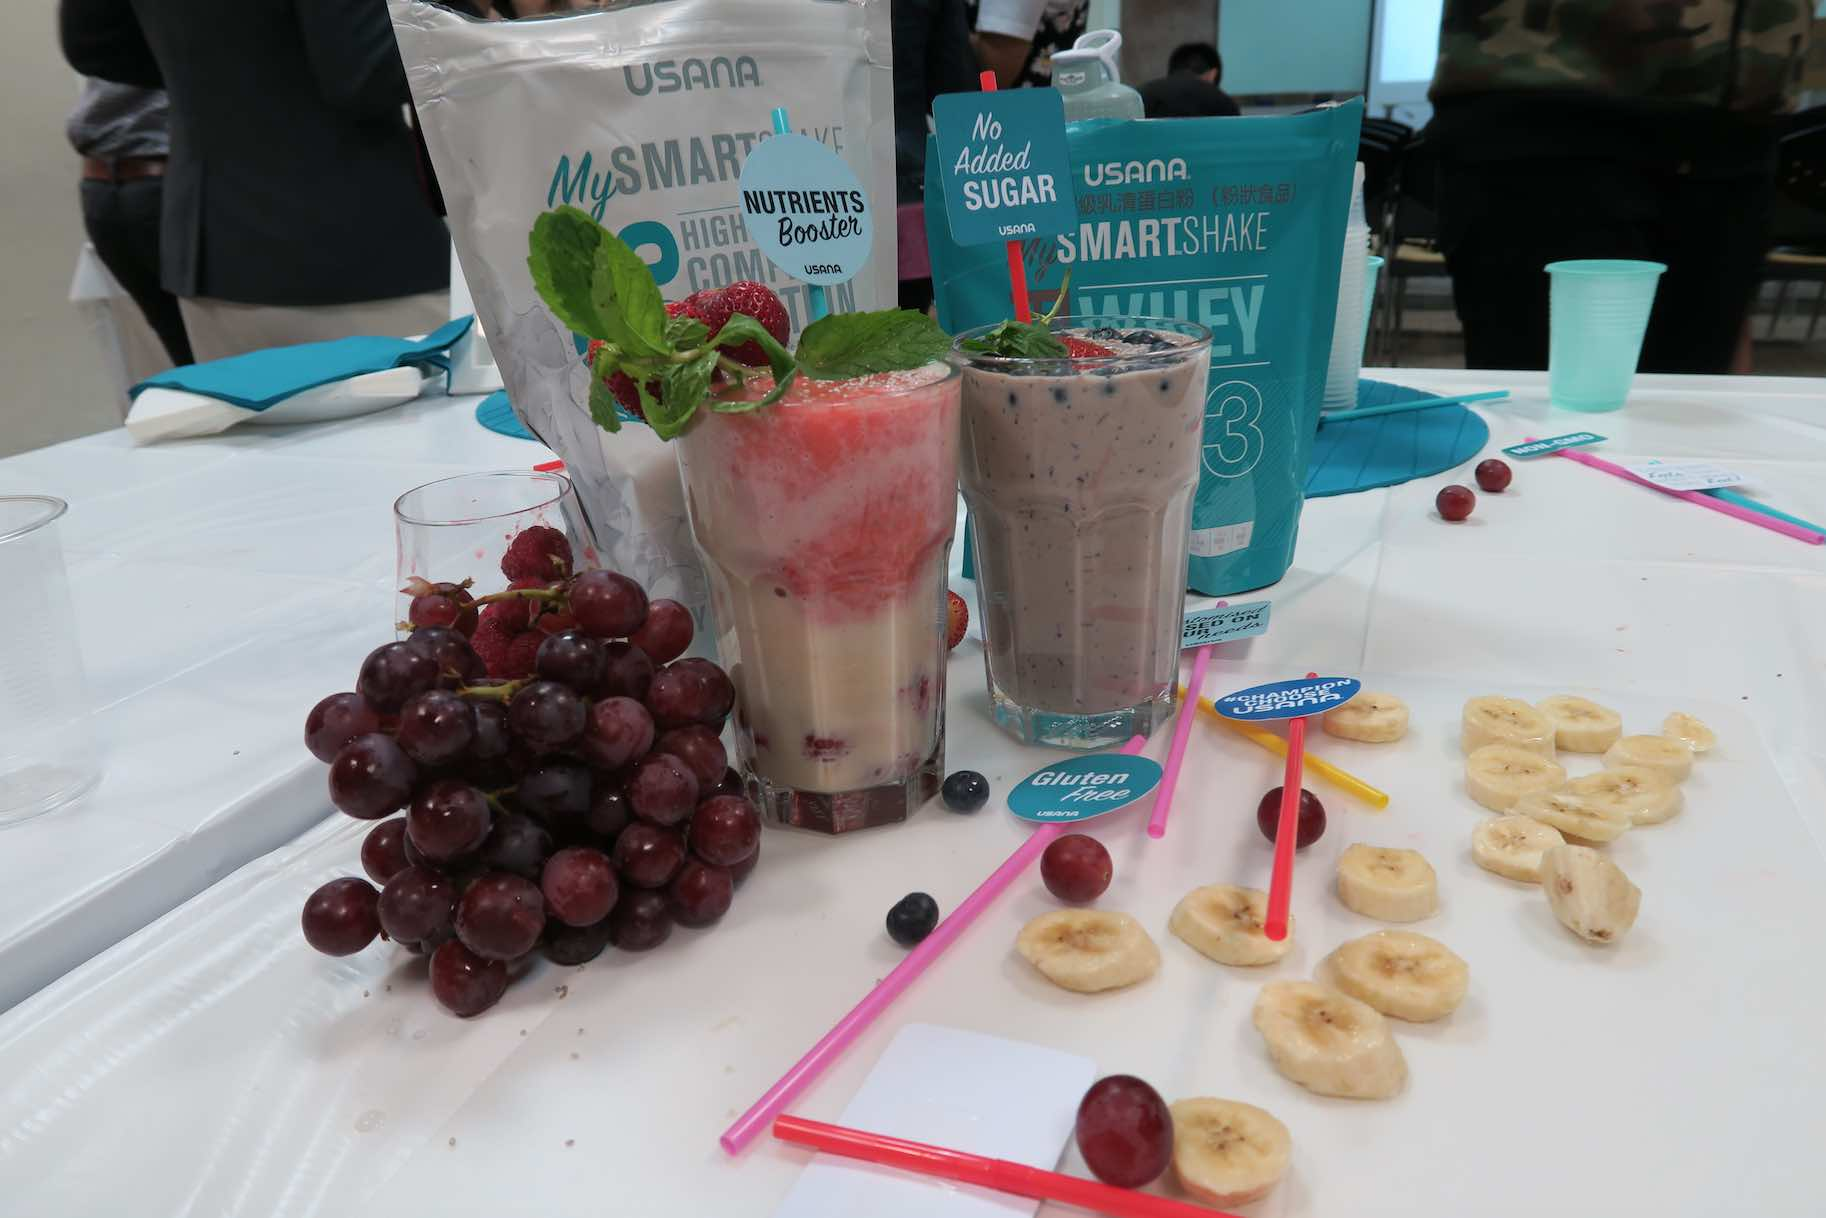 USANA Shakes are great with grapes and bananas too - AspirantSG